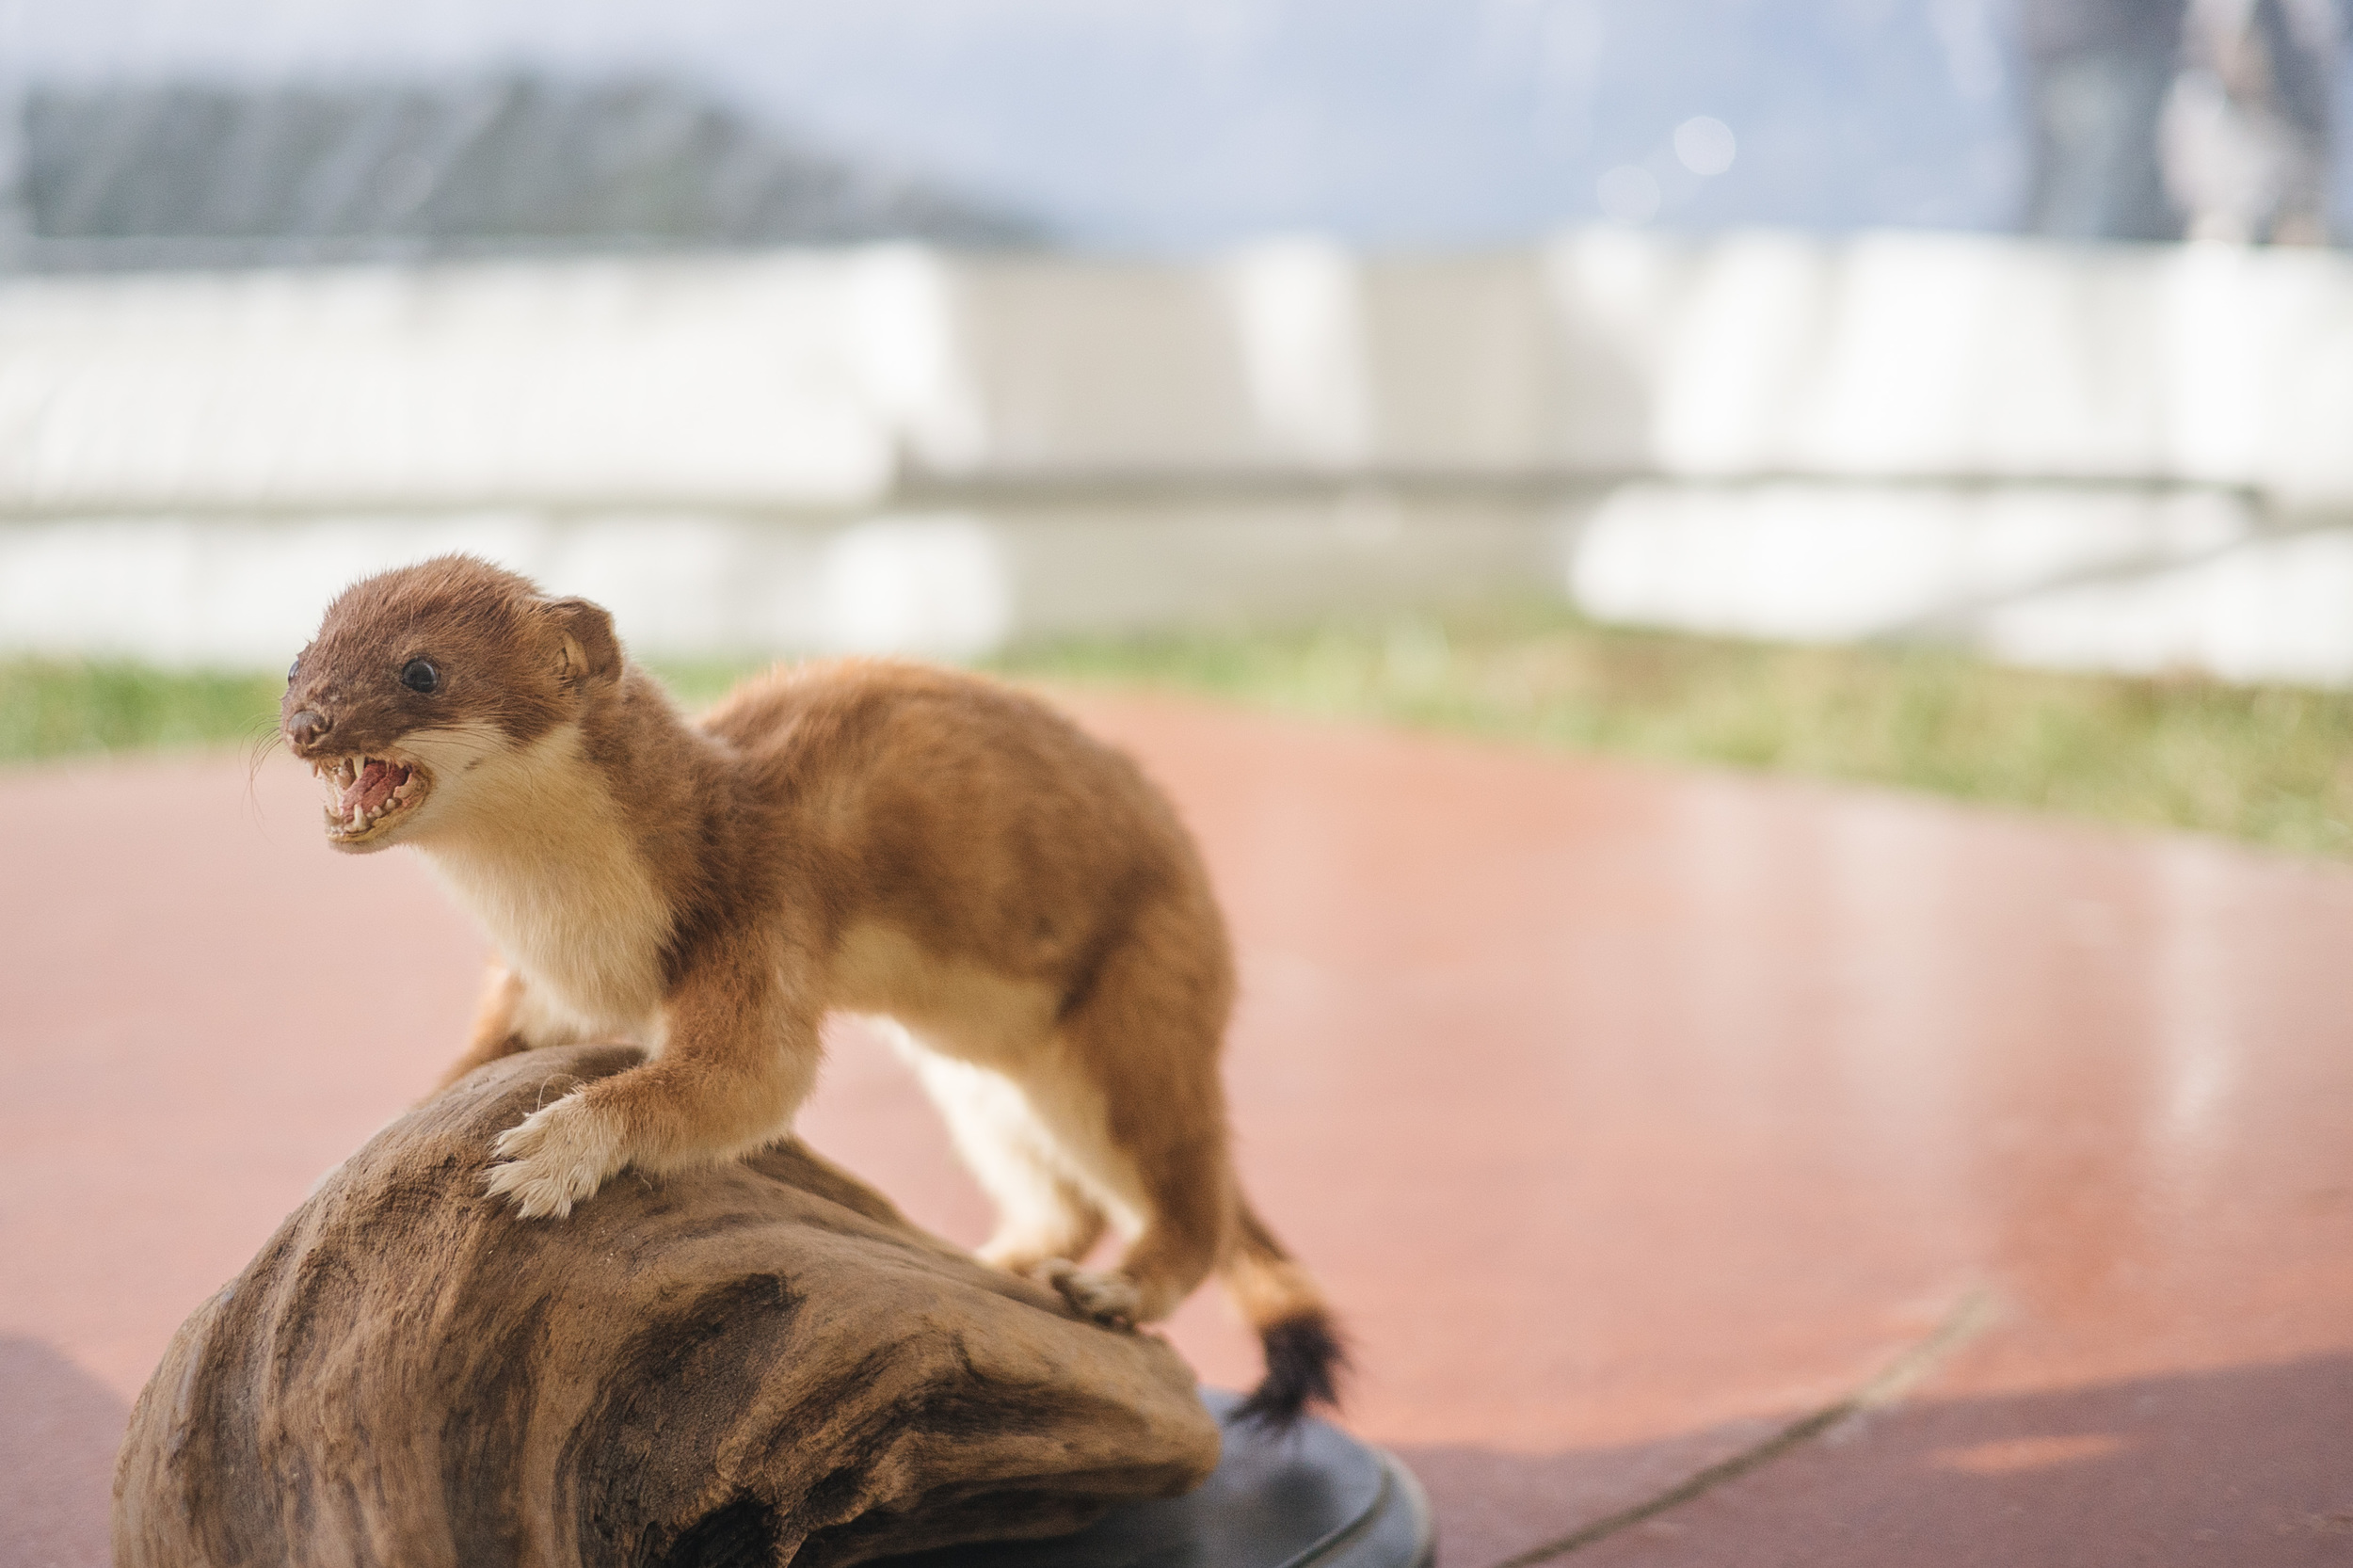 A taxidermied stoat fiercely guards the podium during speeches.